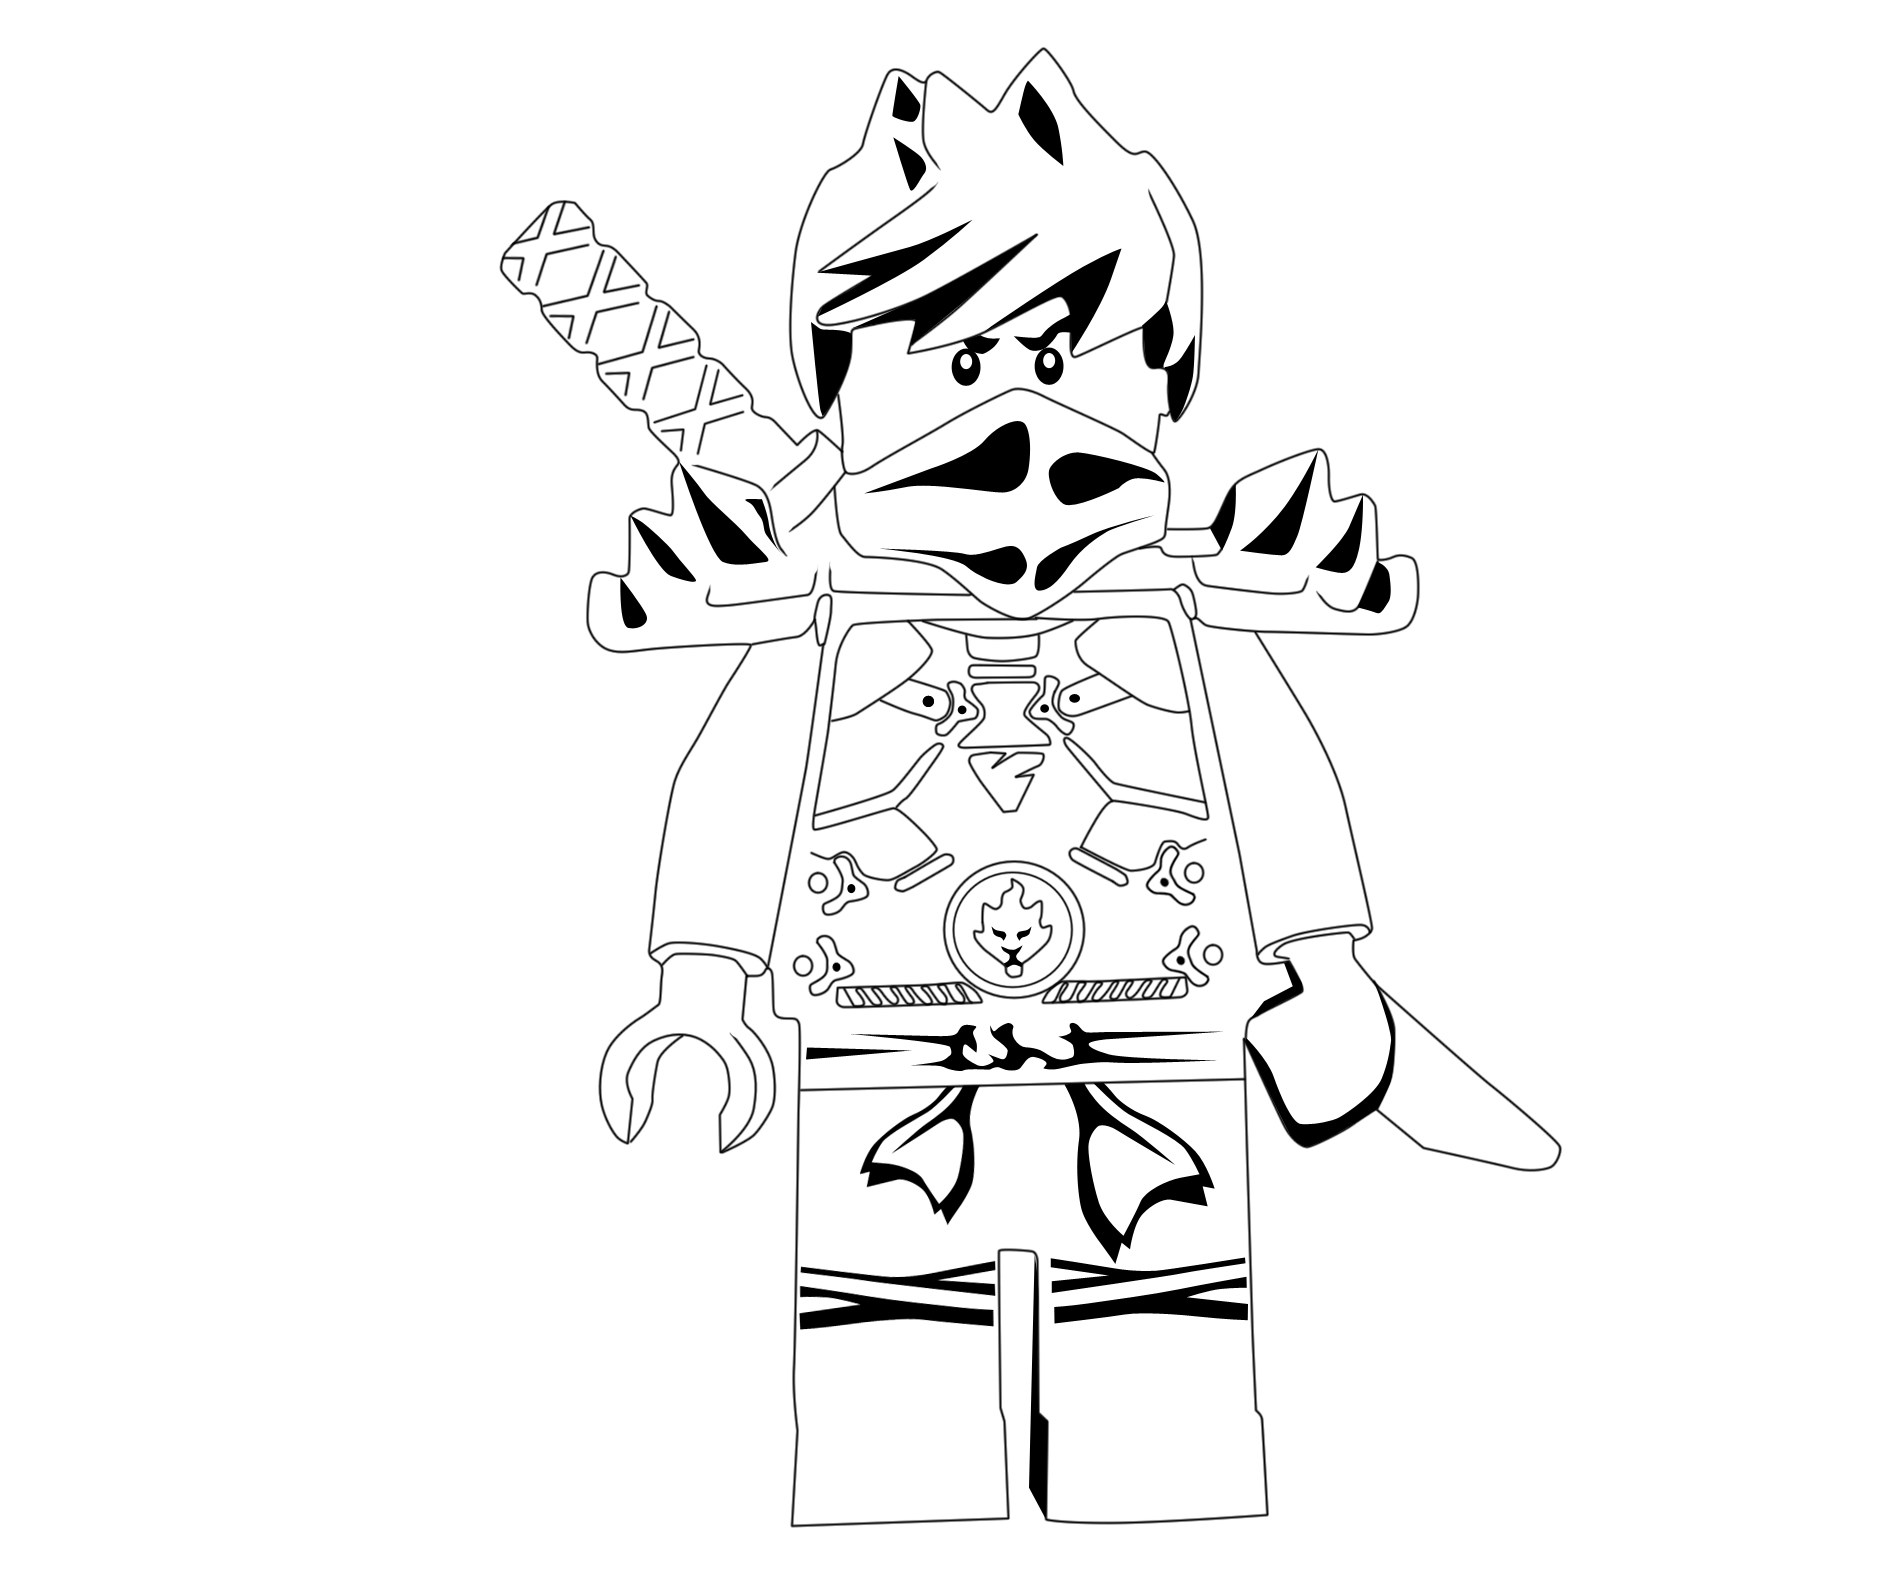 ninjago drawing pictures learn how to draw jay from ninjago ninjago step by step ninjago pictures drawing